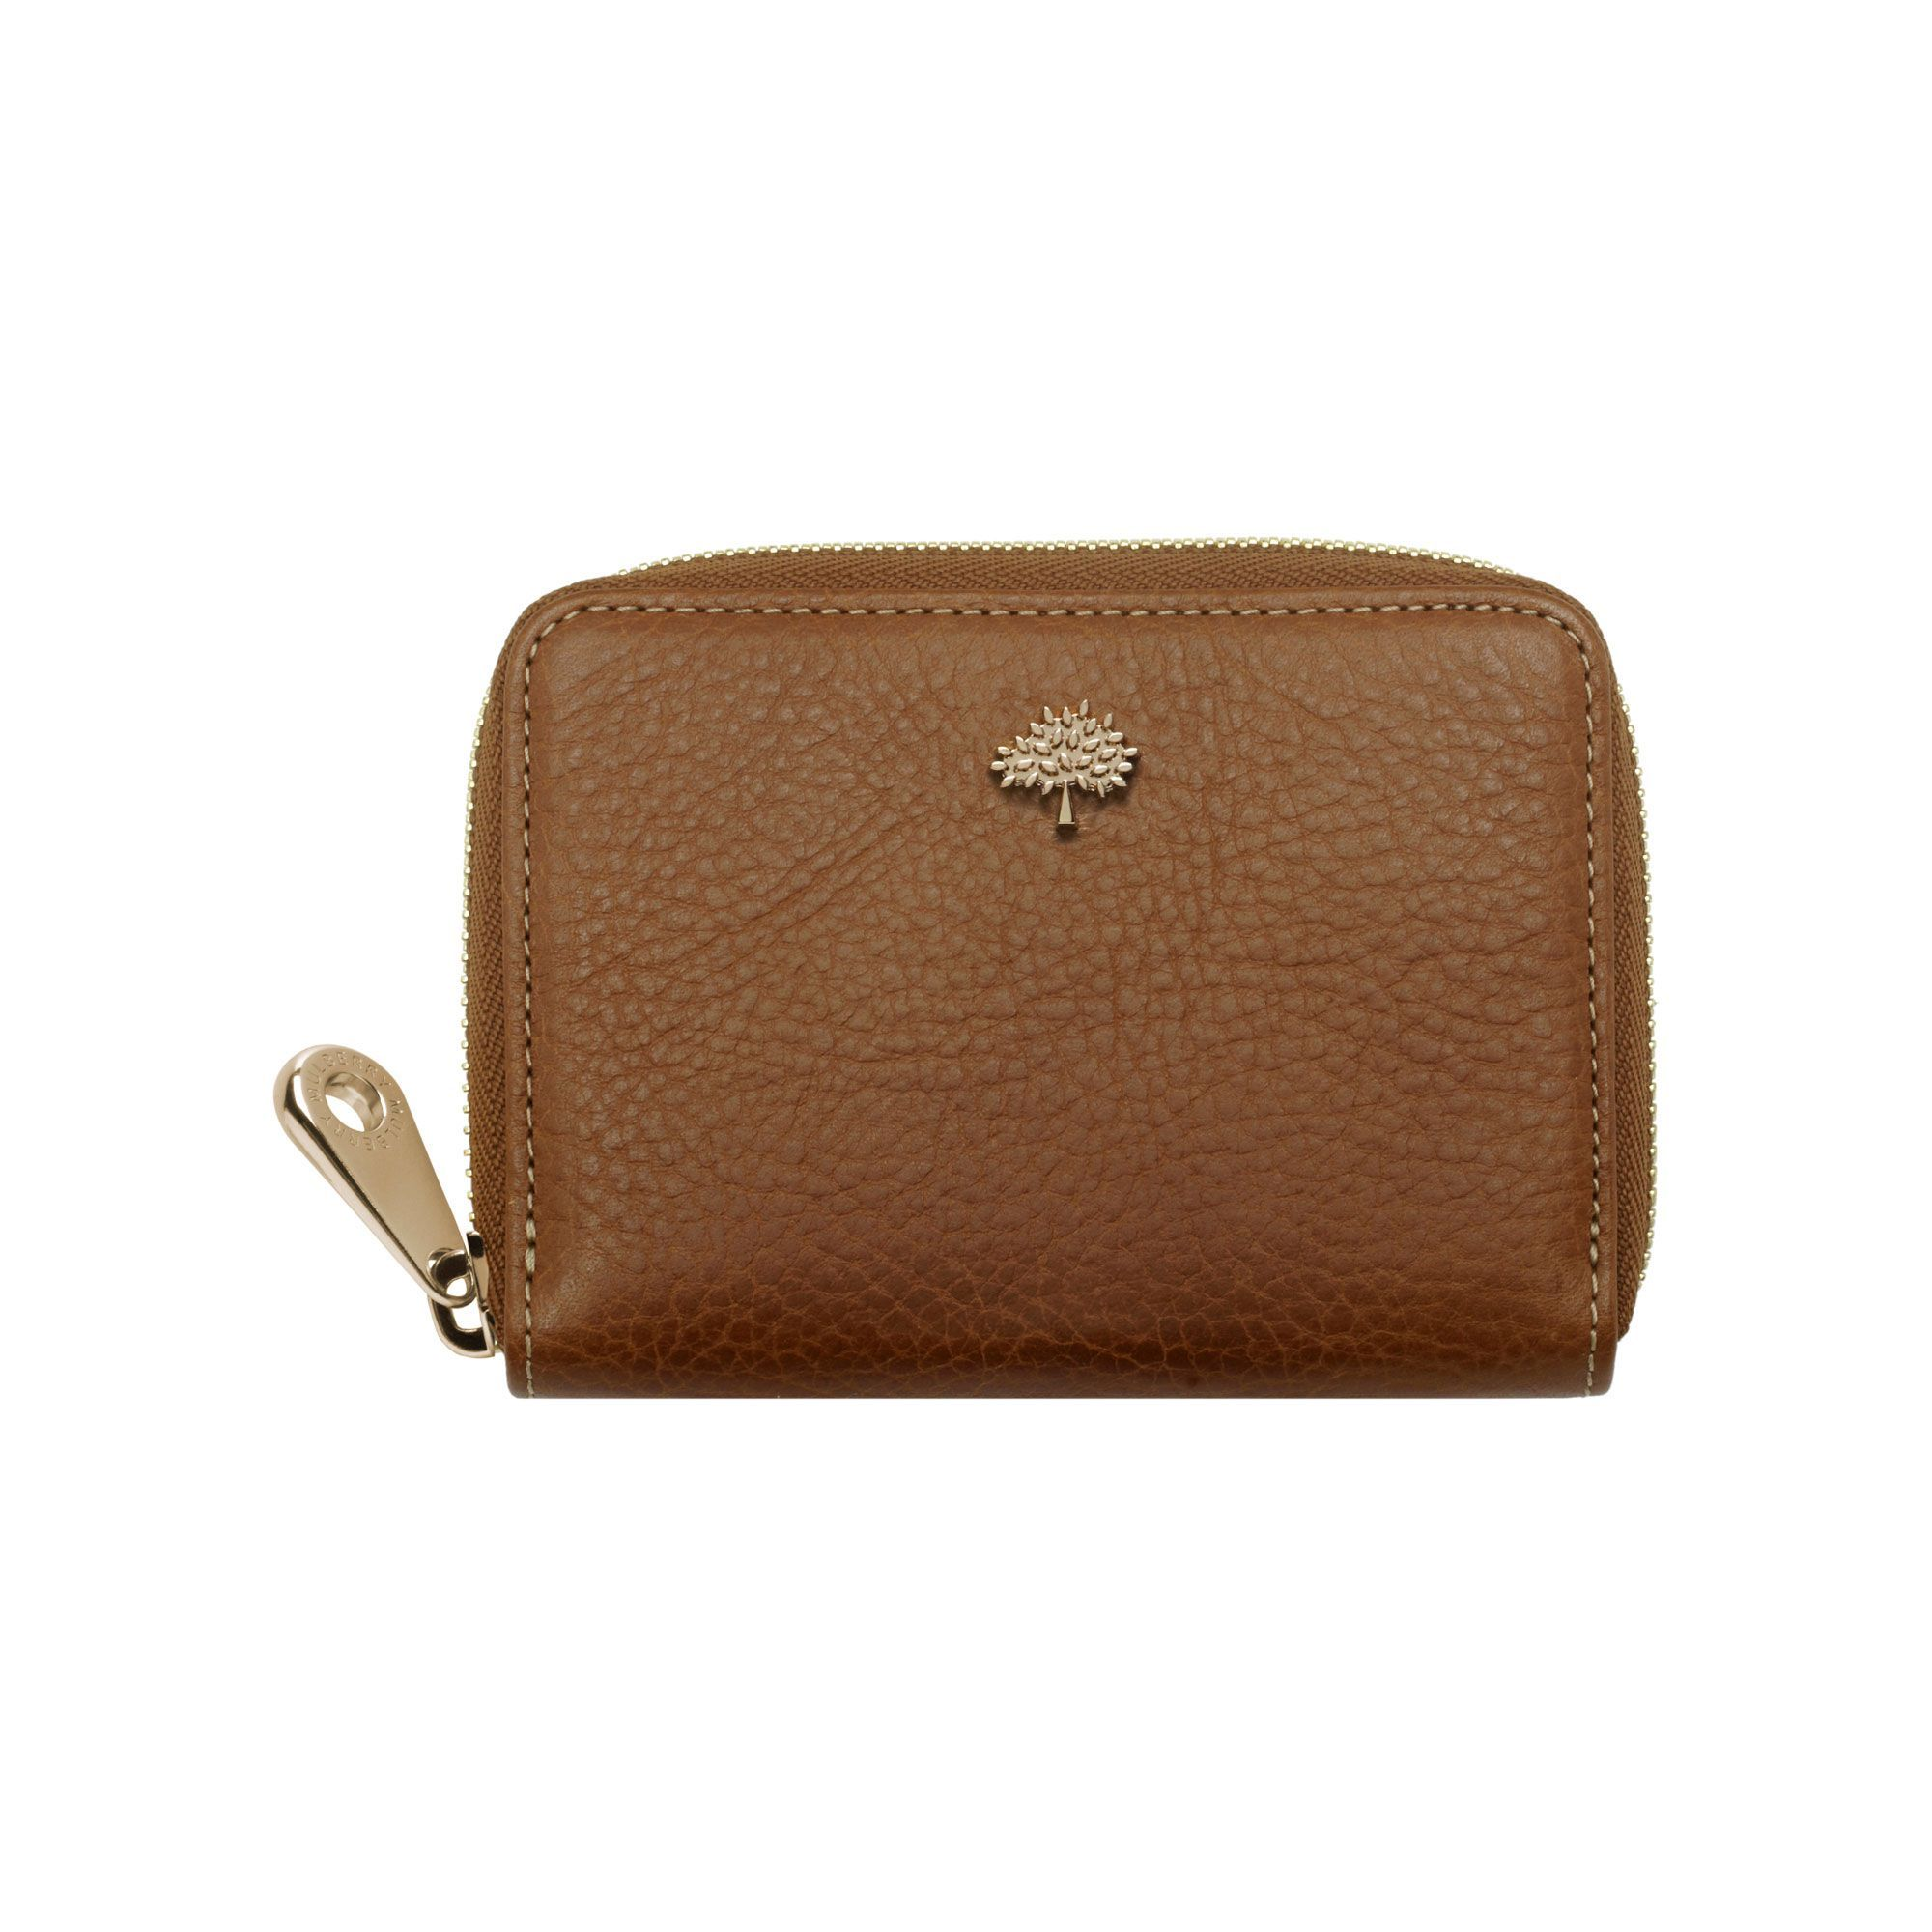 3f5c5c7b4a Mulberry - Tree Zip Around Purse in Oak Natural Leather   Handbags ...